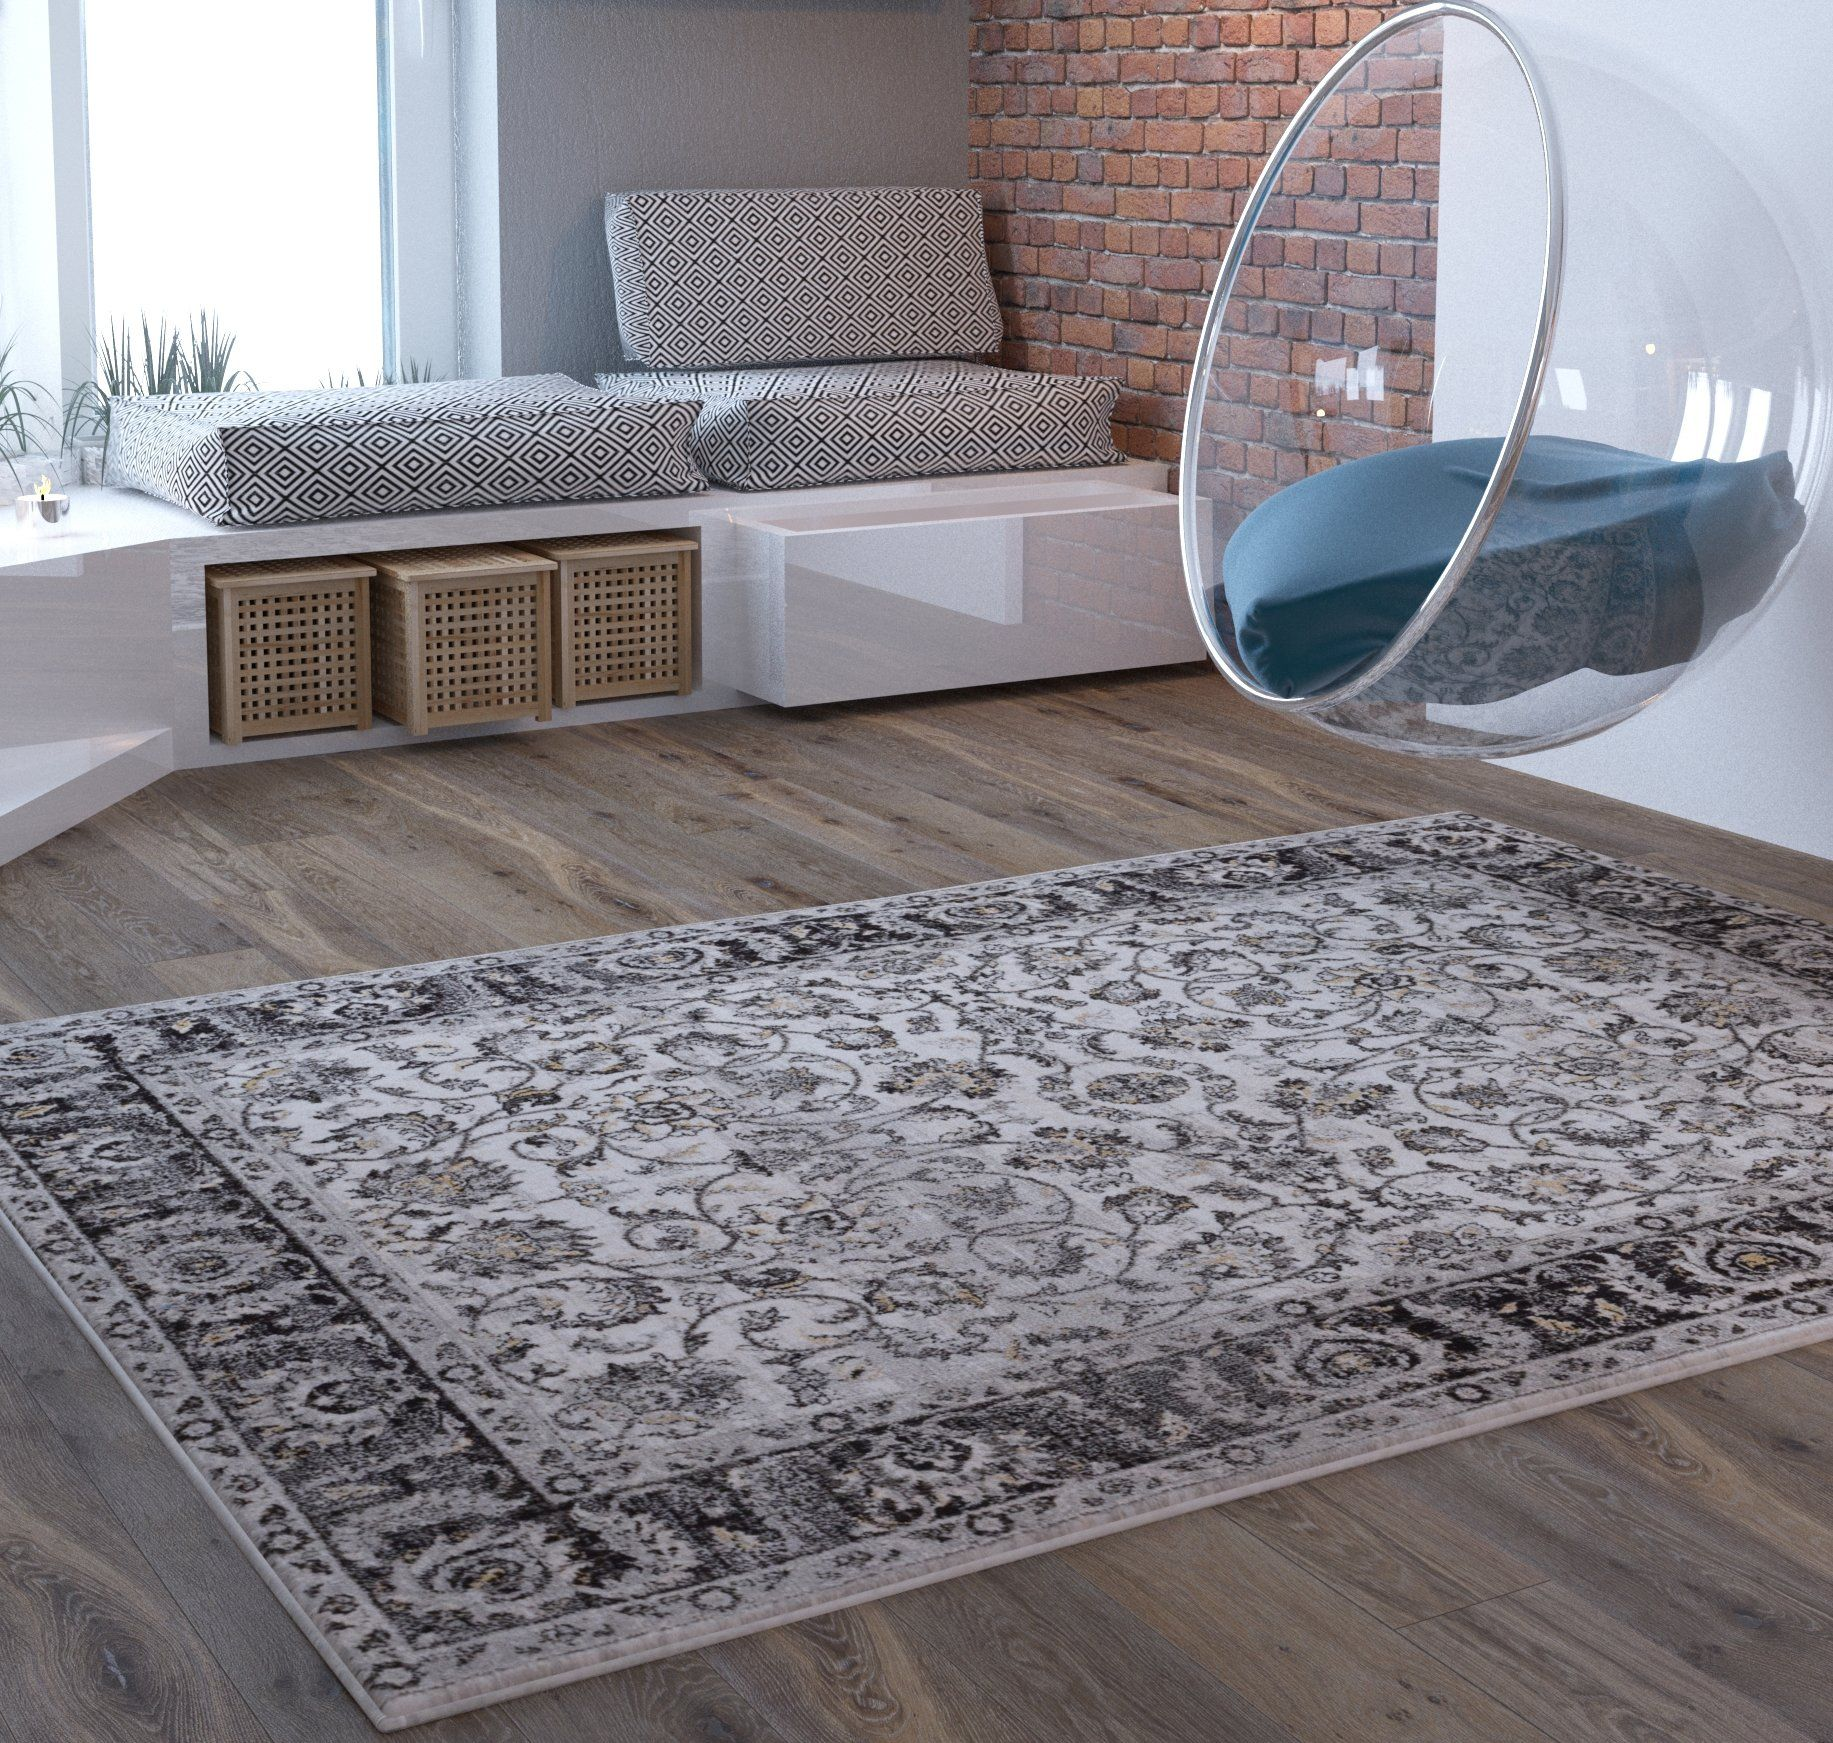 Beige Traditional Distressed 5 X 7 [ 53 X 73 ] Area Rug Modern Vintage  Transitional Rug Soft Living Dining Room Contemporary Area Rug U003eu003eu003e Click On  The Image ...